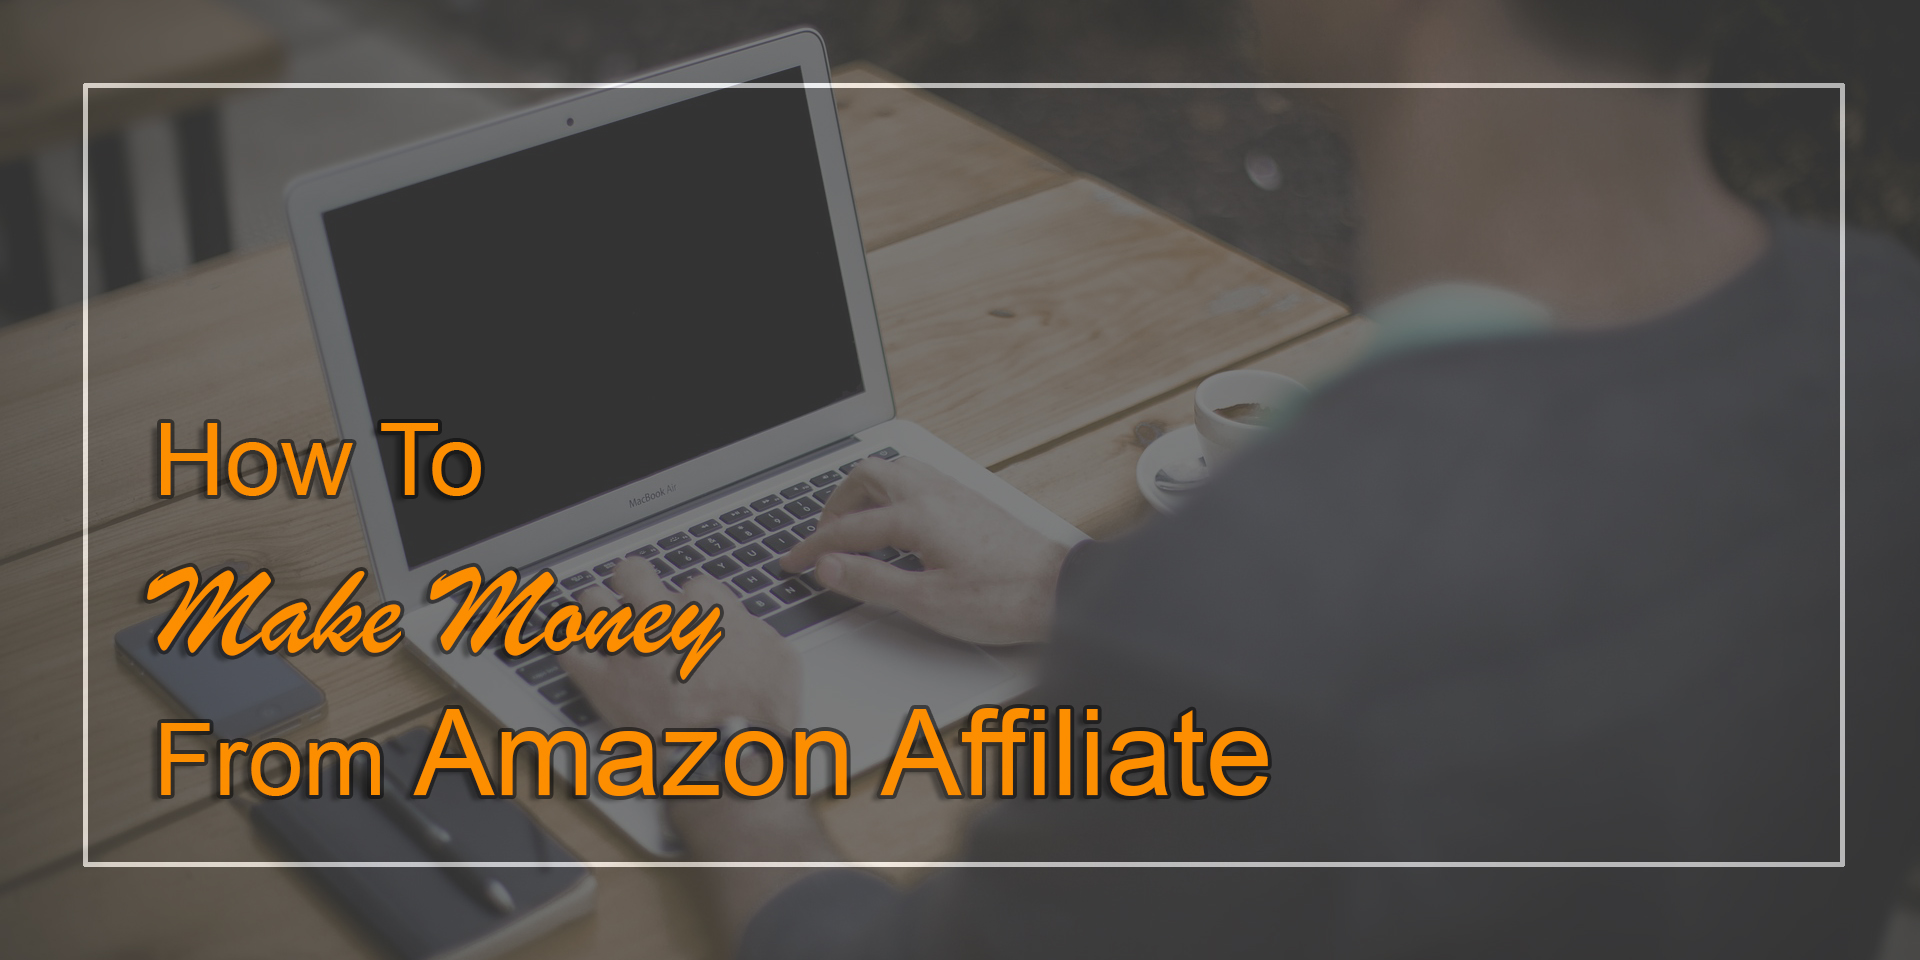 How To Make Money From Amazon